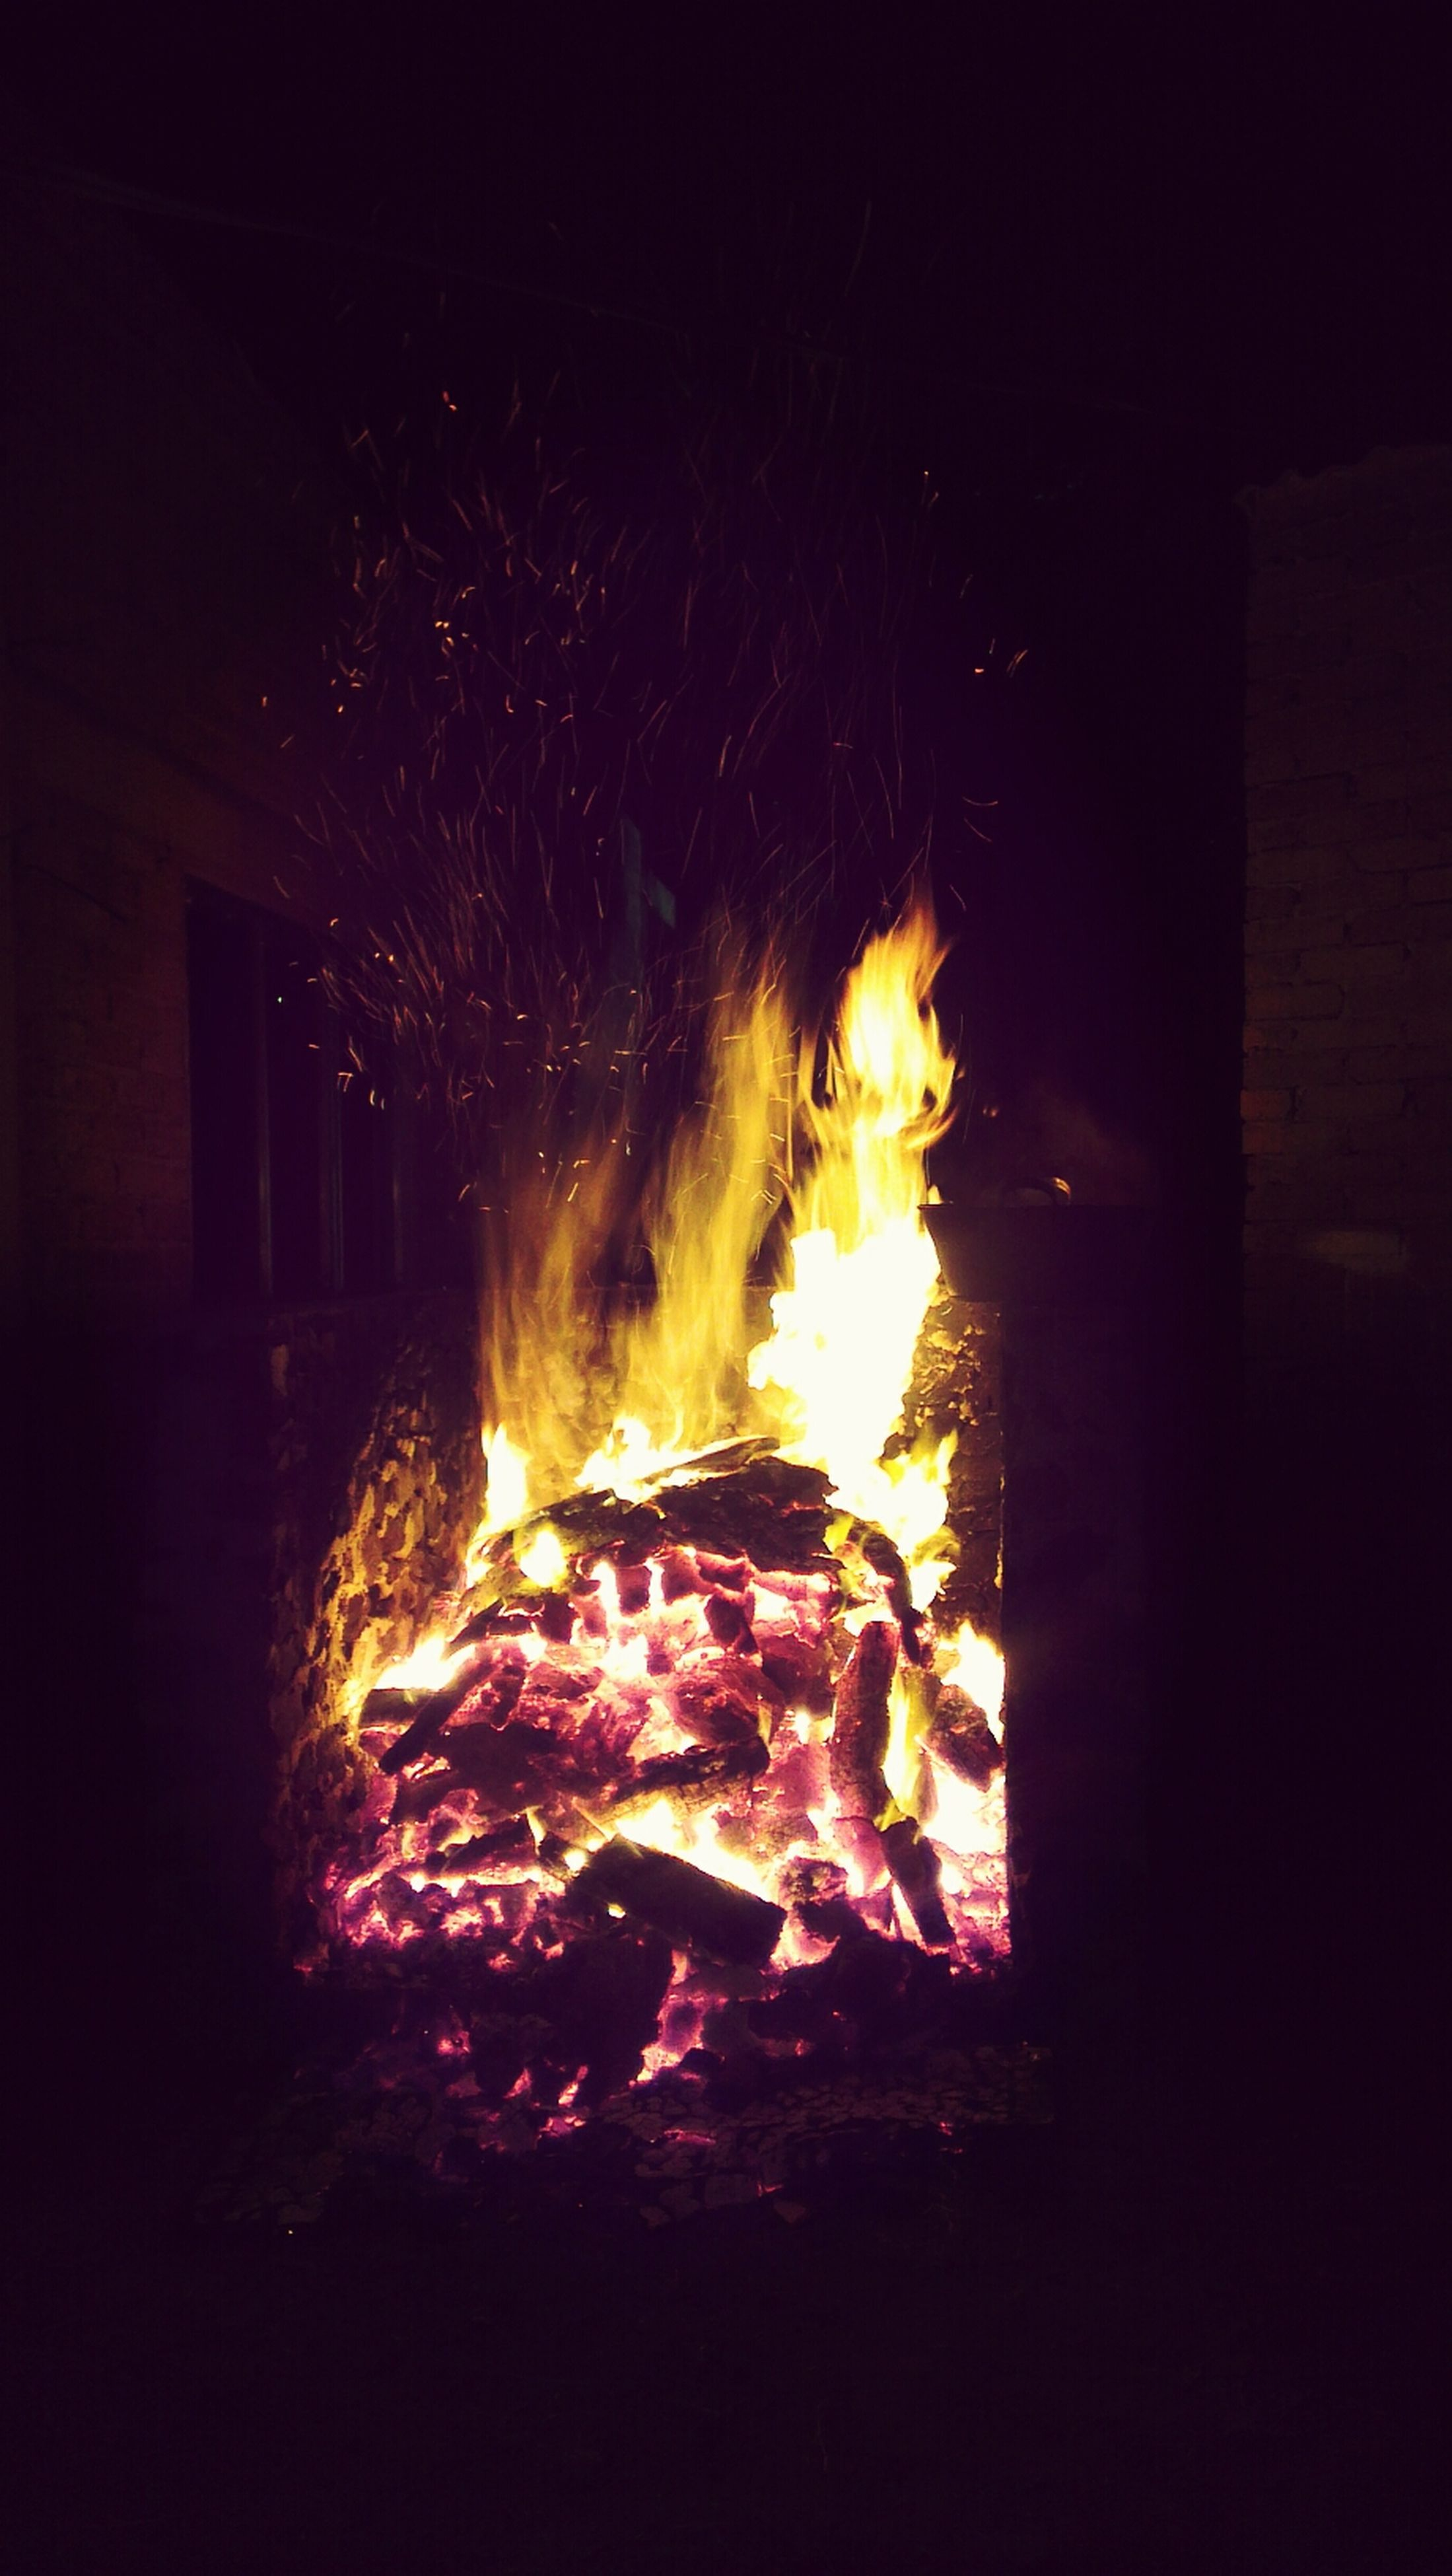 night, illuminated, burning, fire - natural phenomenon, flame, glowing, heat - temperature, dark, fire, light - natural phenomenon, long exposure, motion, bonfire, firewood, built structure, no people, orange color, outdoors, building exterior